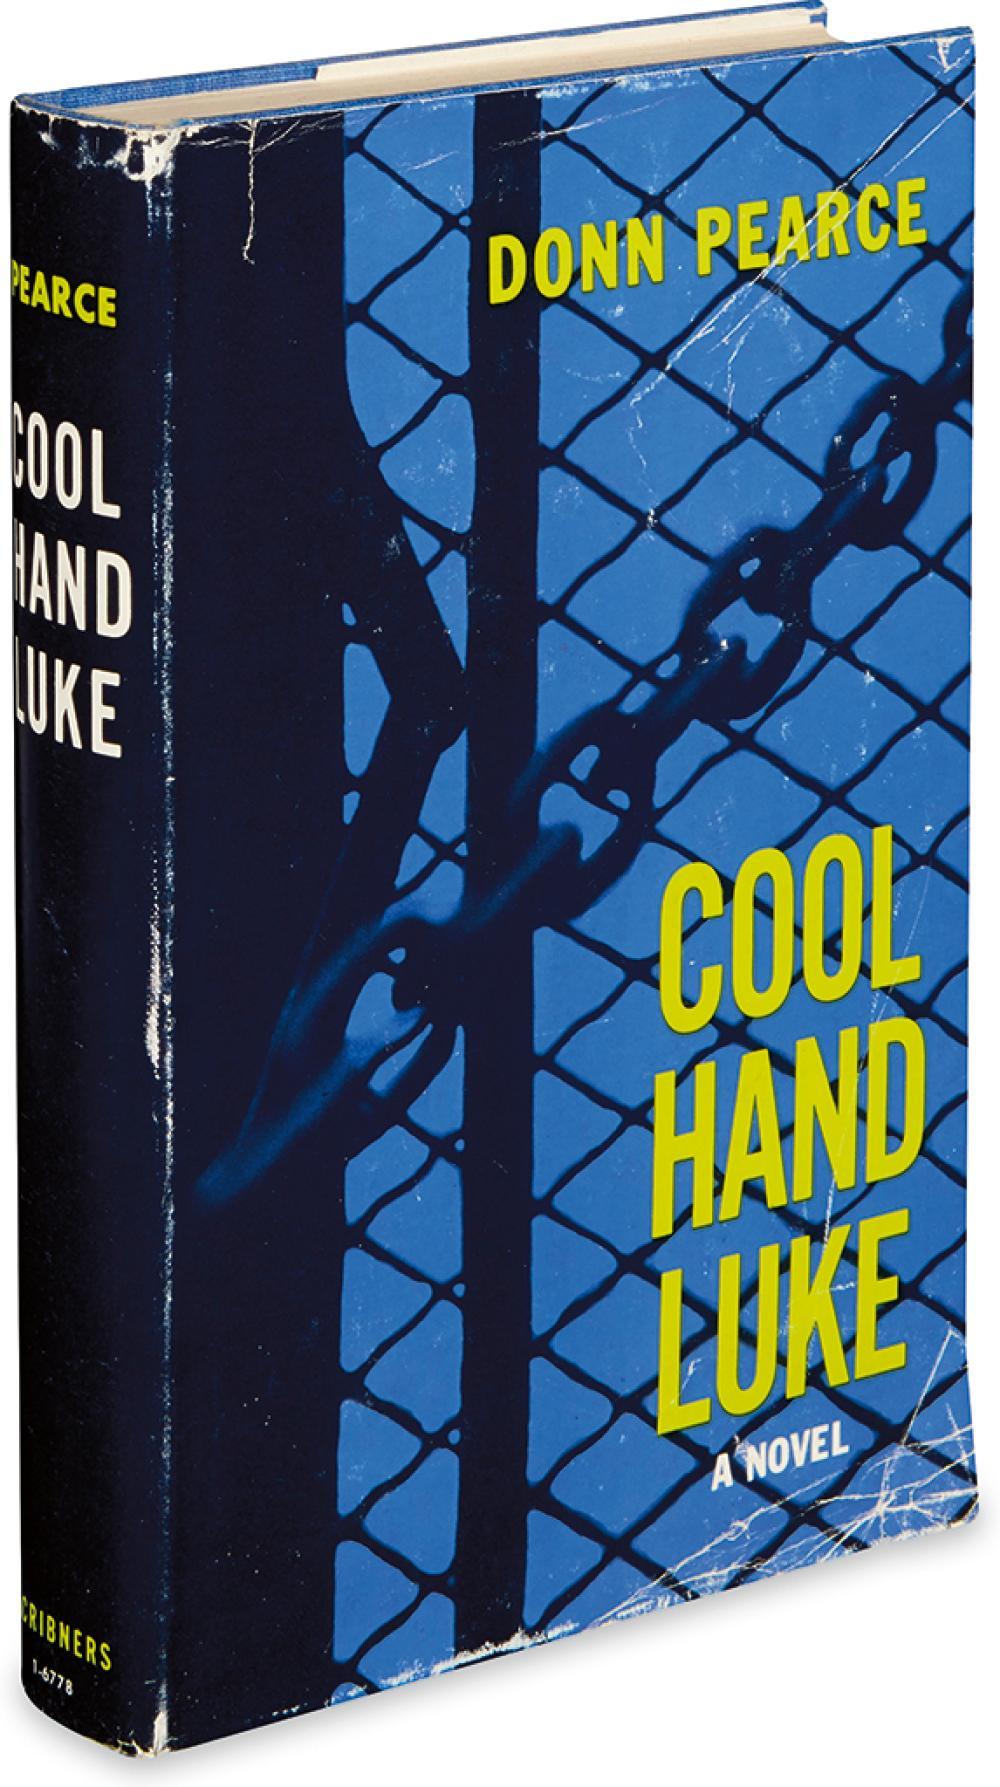 PEARCE, DONN. Cool Hand Luke.